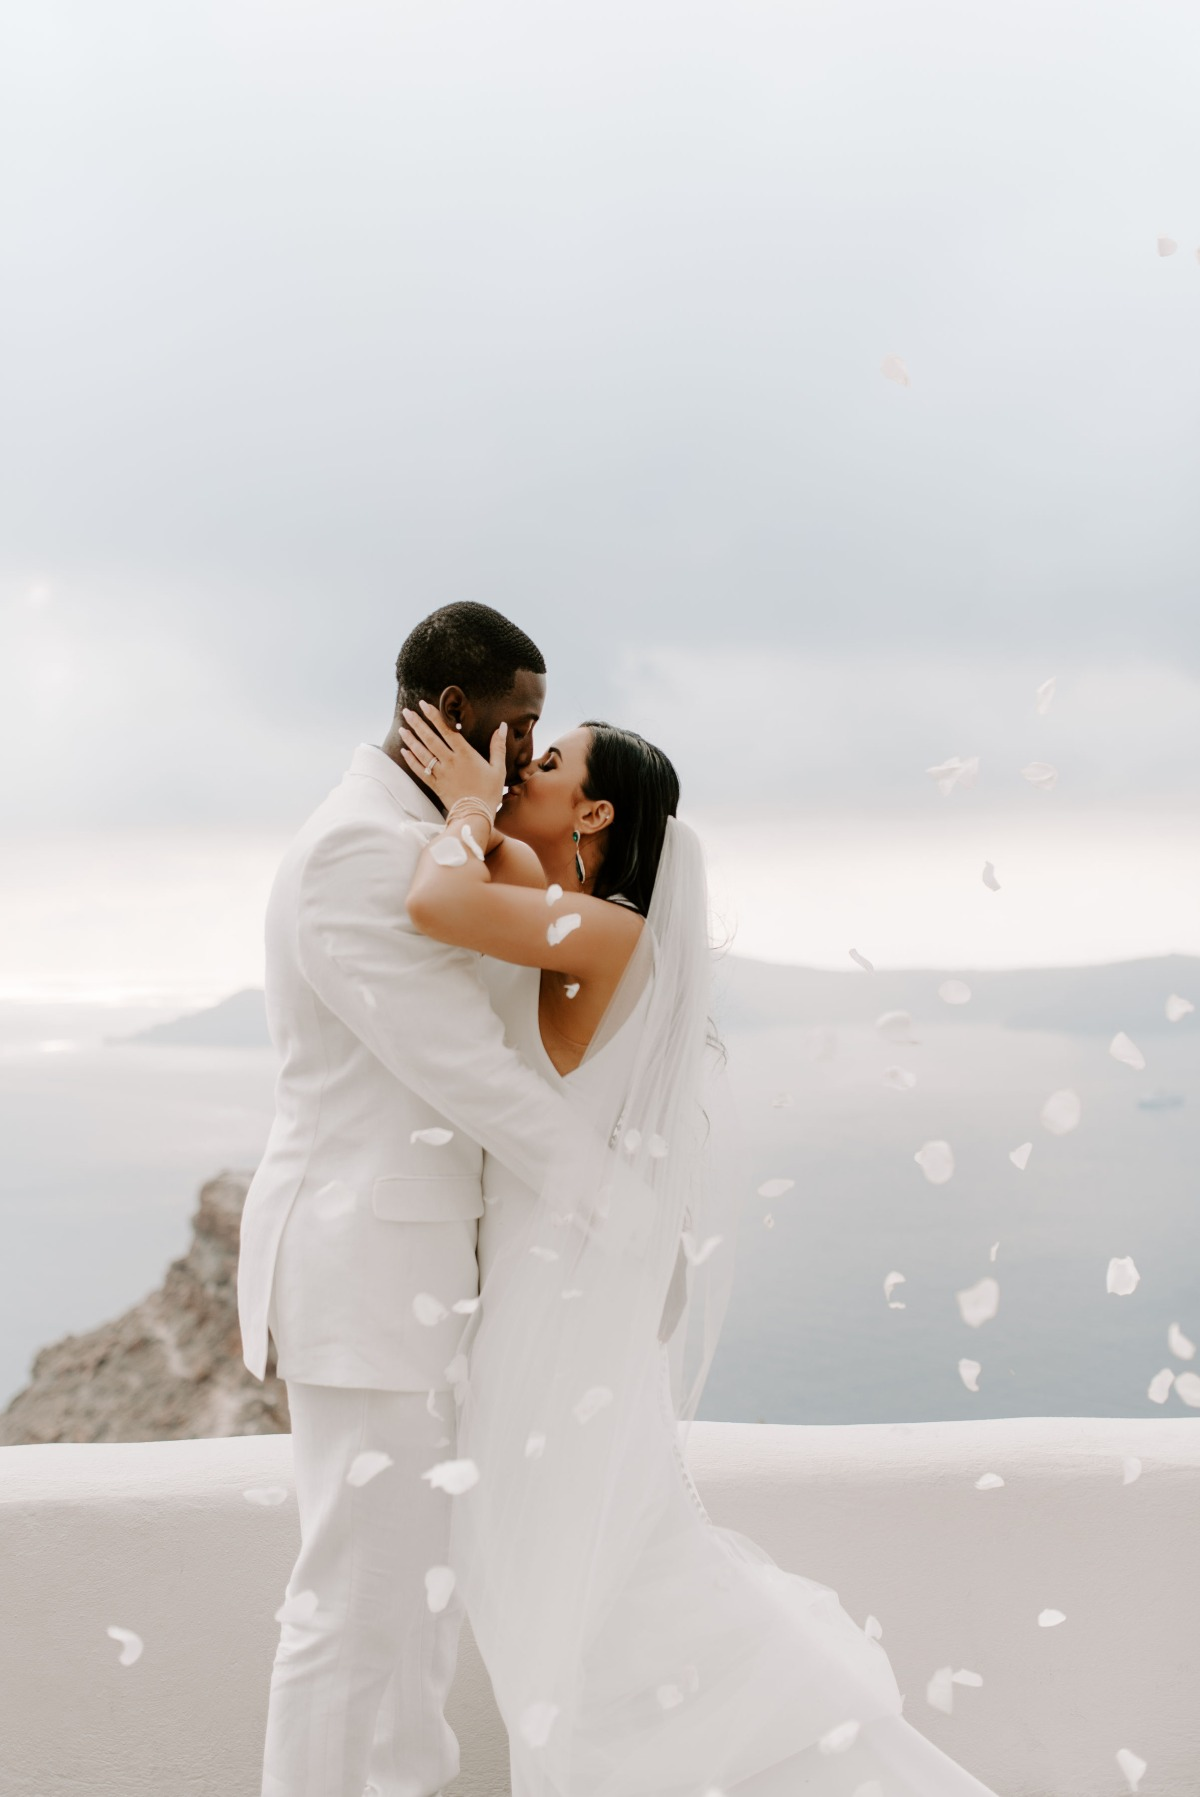 Just married in Santorini